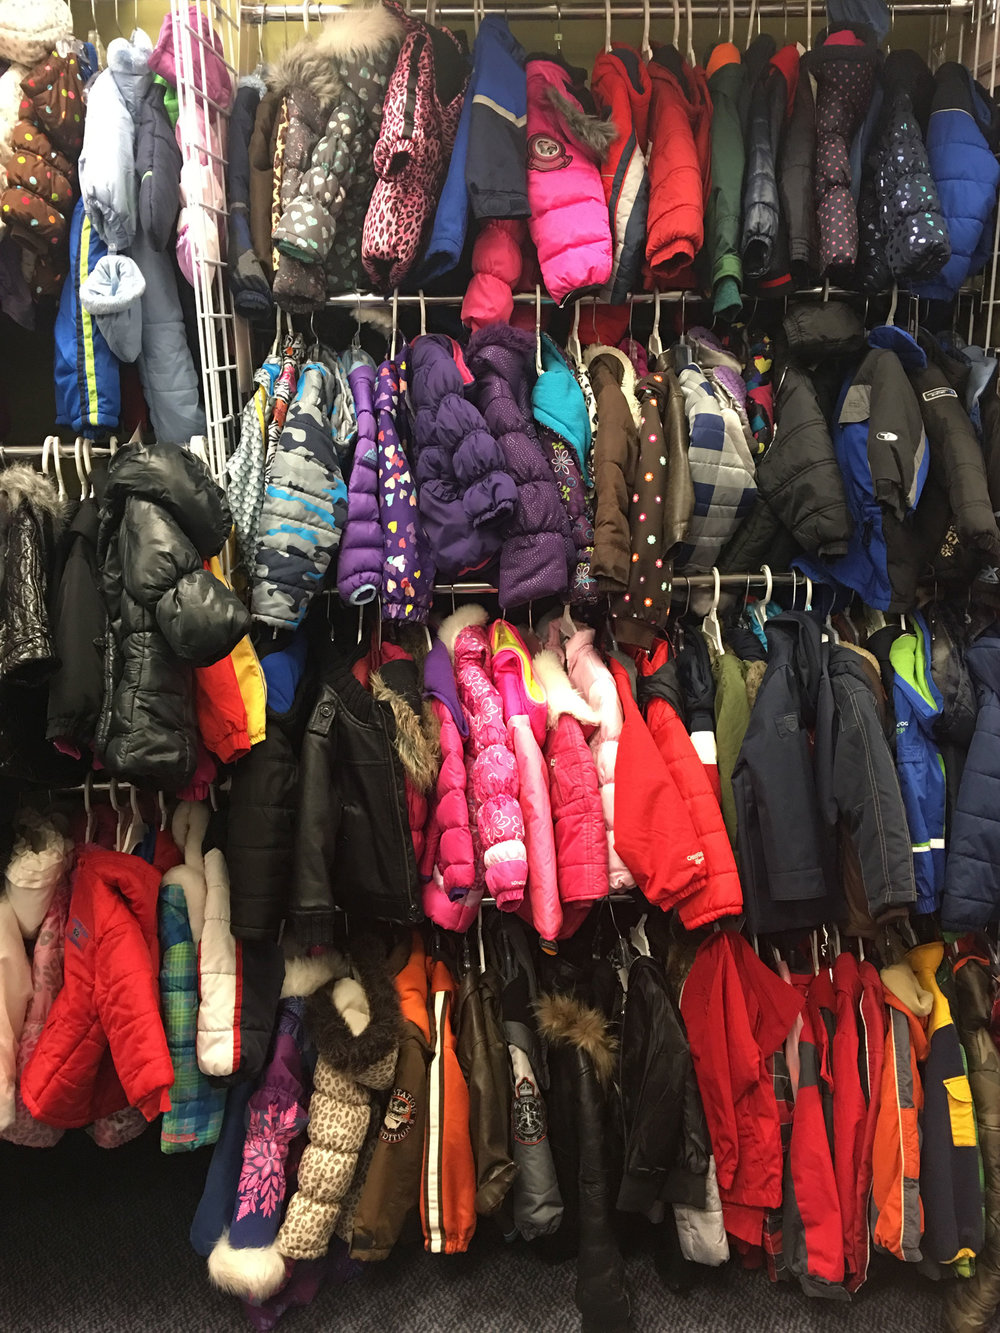 bit-and-bauble-items-to-buy-used-kids-consignment-stores-toddlers-baby-10.jpg